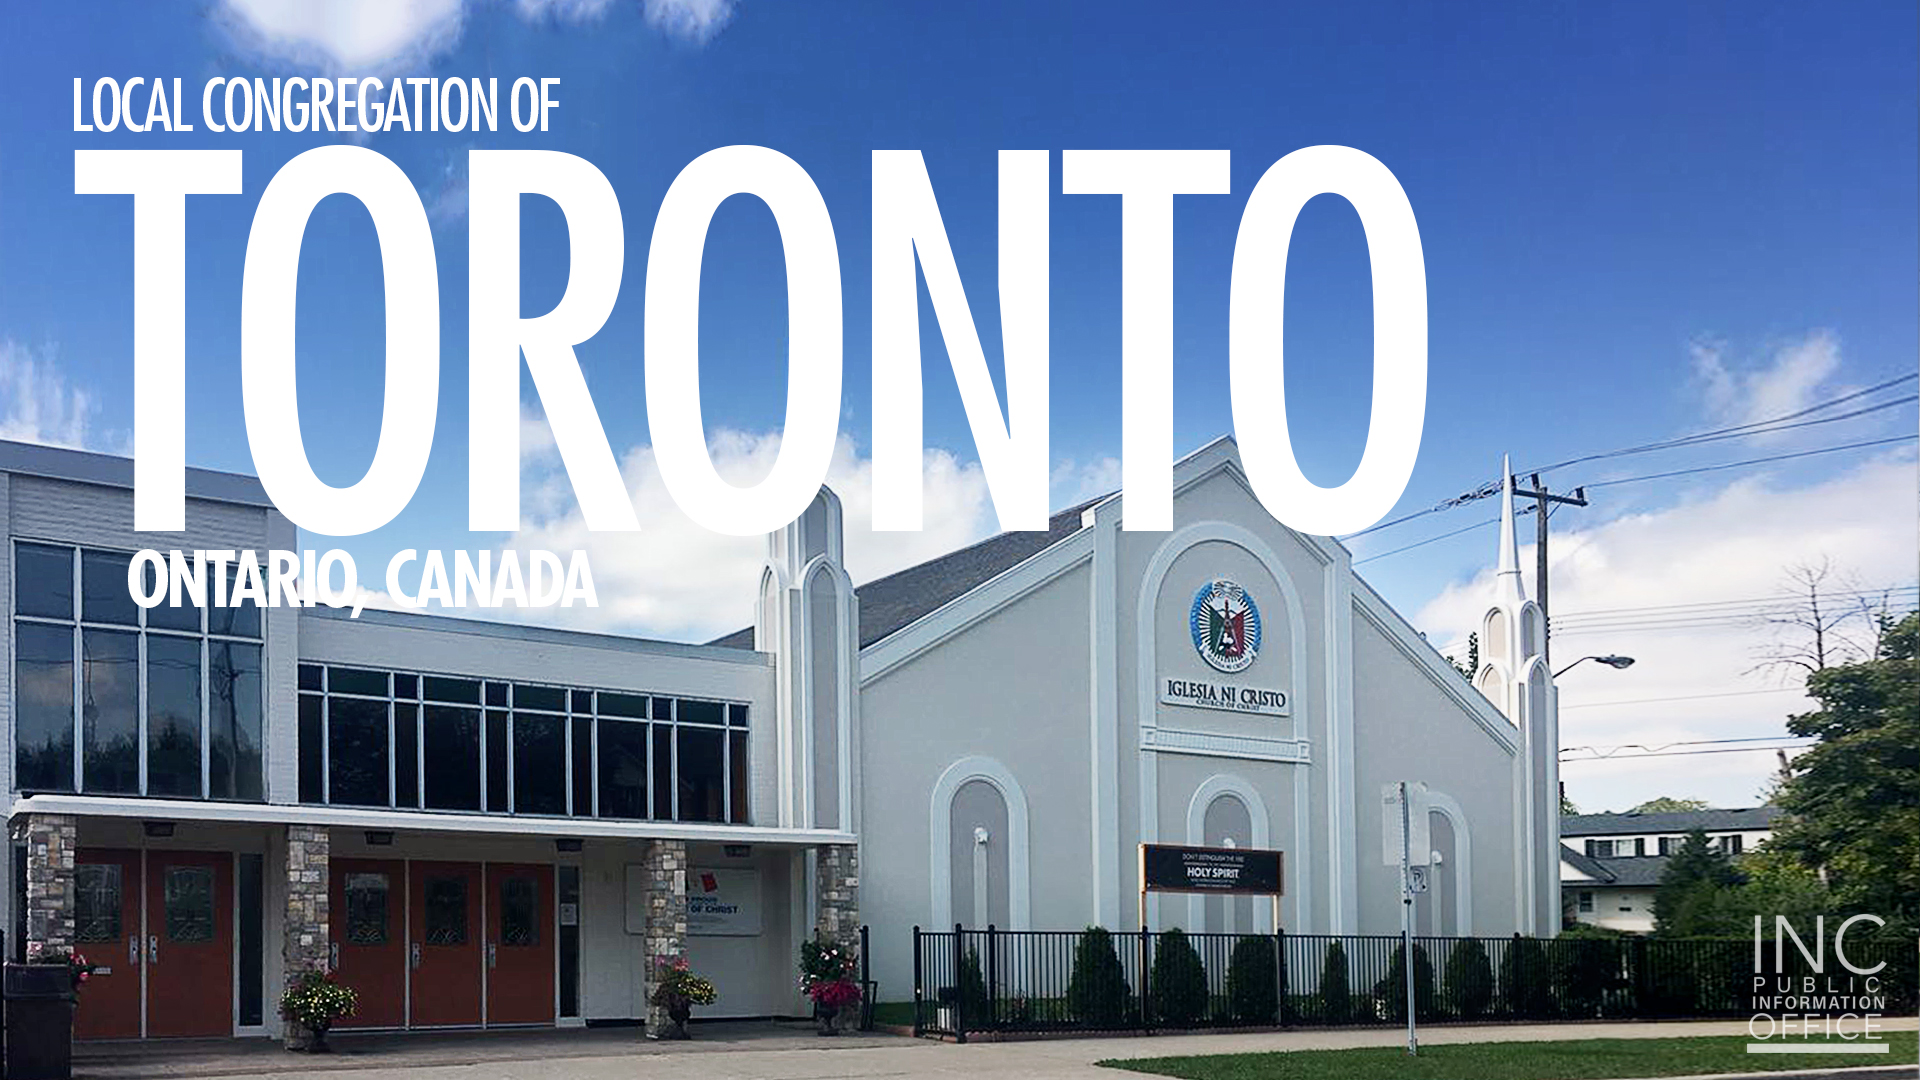 """Church of Christ house of worship building in Toronto, Canada, with overlay text: """"Local Congregation of Toronto - Ontario, Canada"""